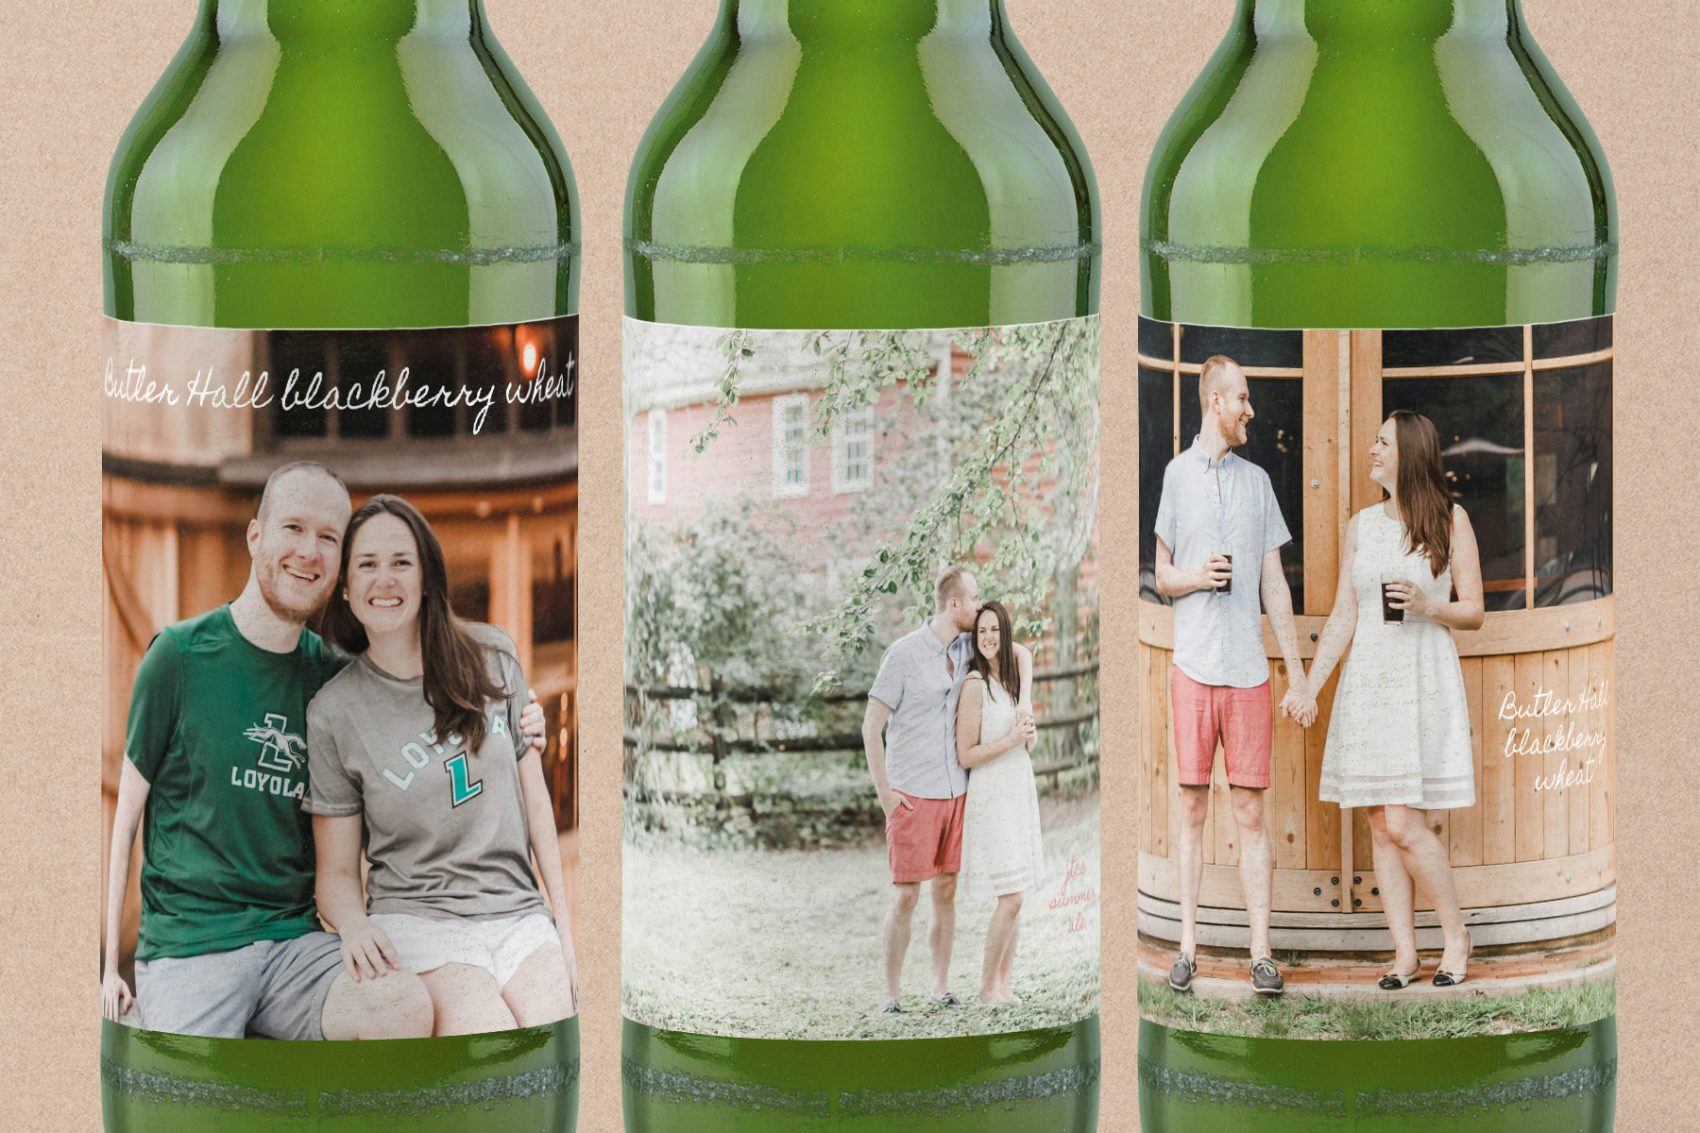 Beer labels with a photo are easy to make for cheap gifts for beer lovers. Starting at one for $3.75. Make one for everyone in the family.